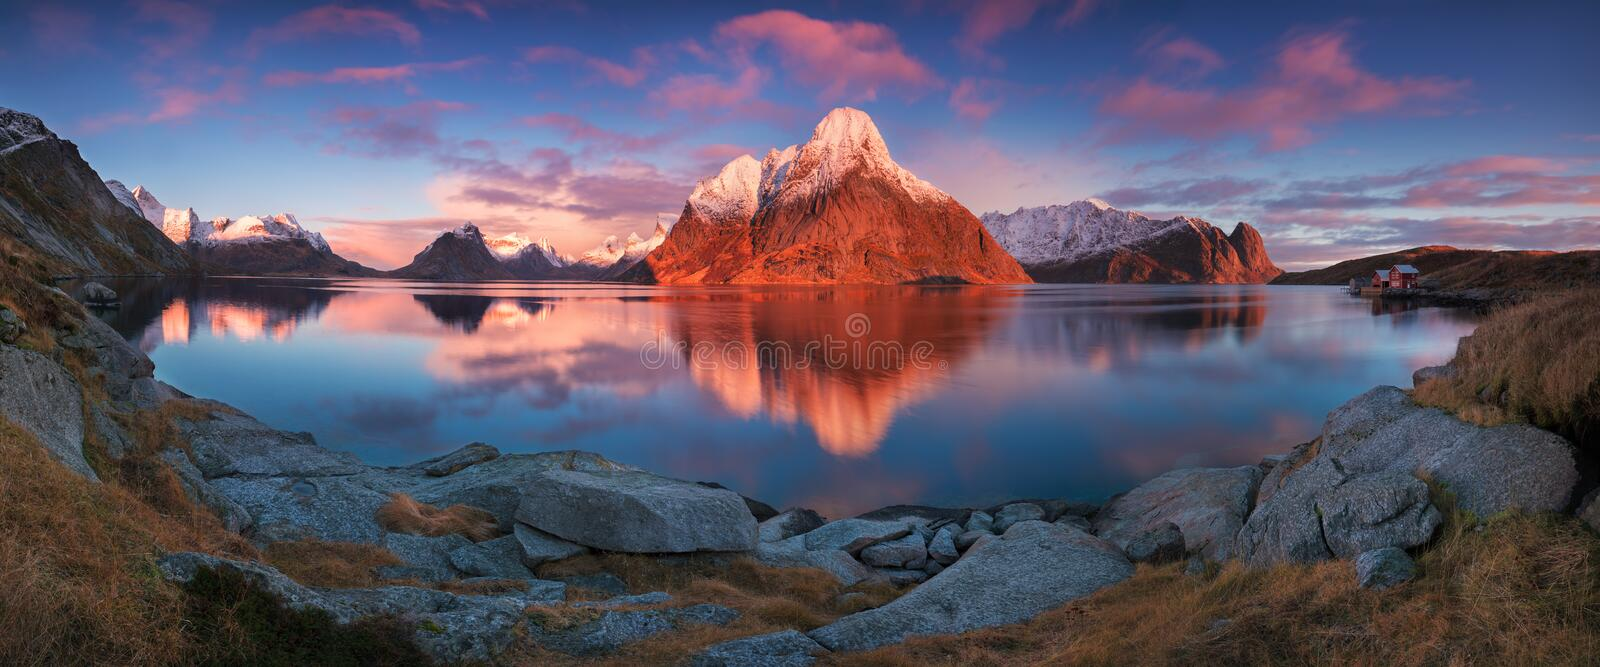 Sunset or sunrise panoramic view on stunning mountains in Lofoten islands, Norway, Mountain coast landscape, Arctic circle. royalty free stock images